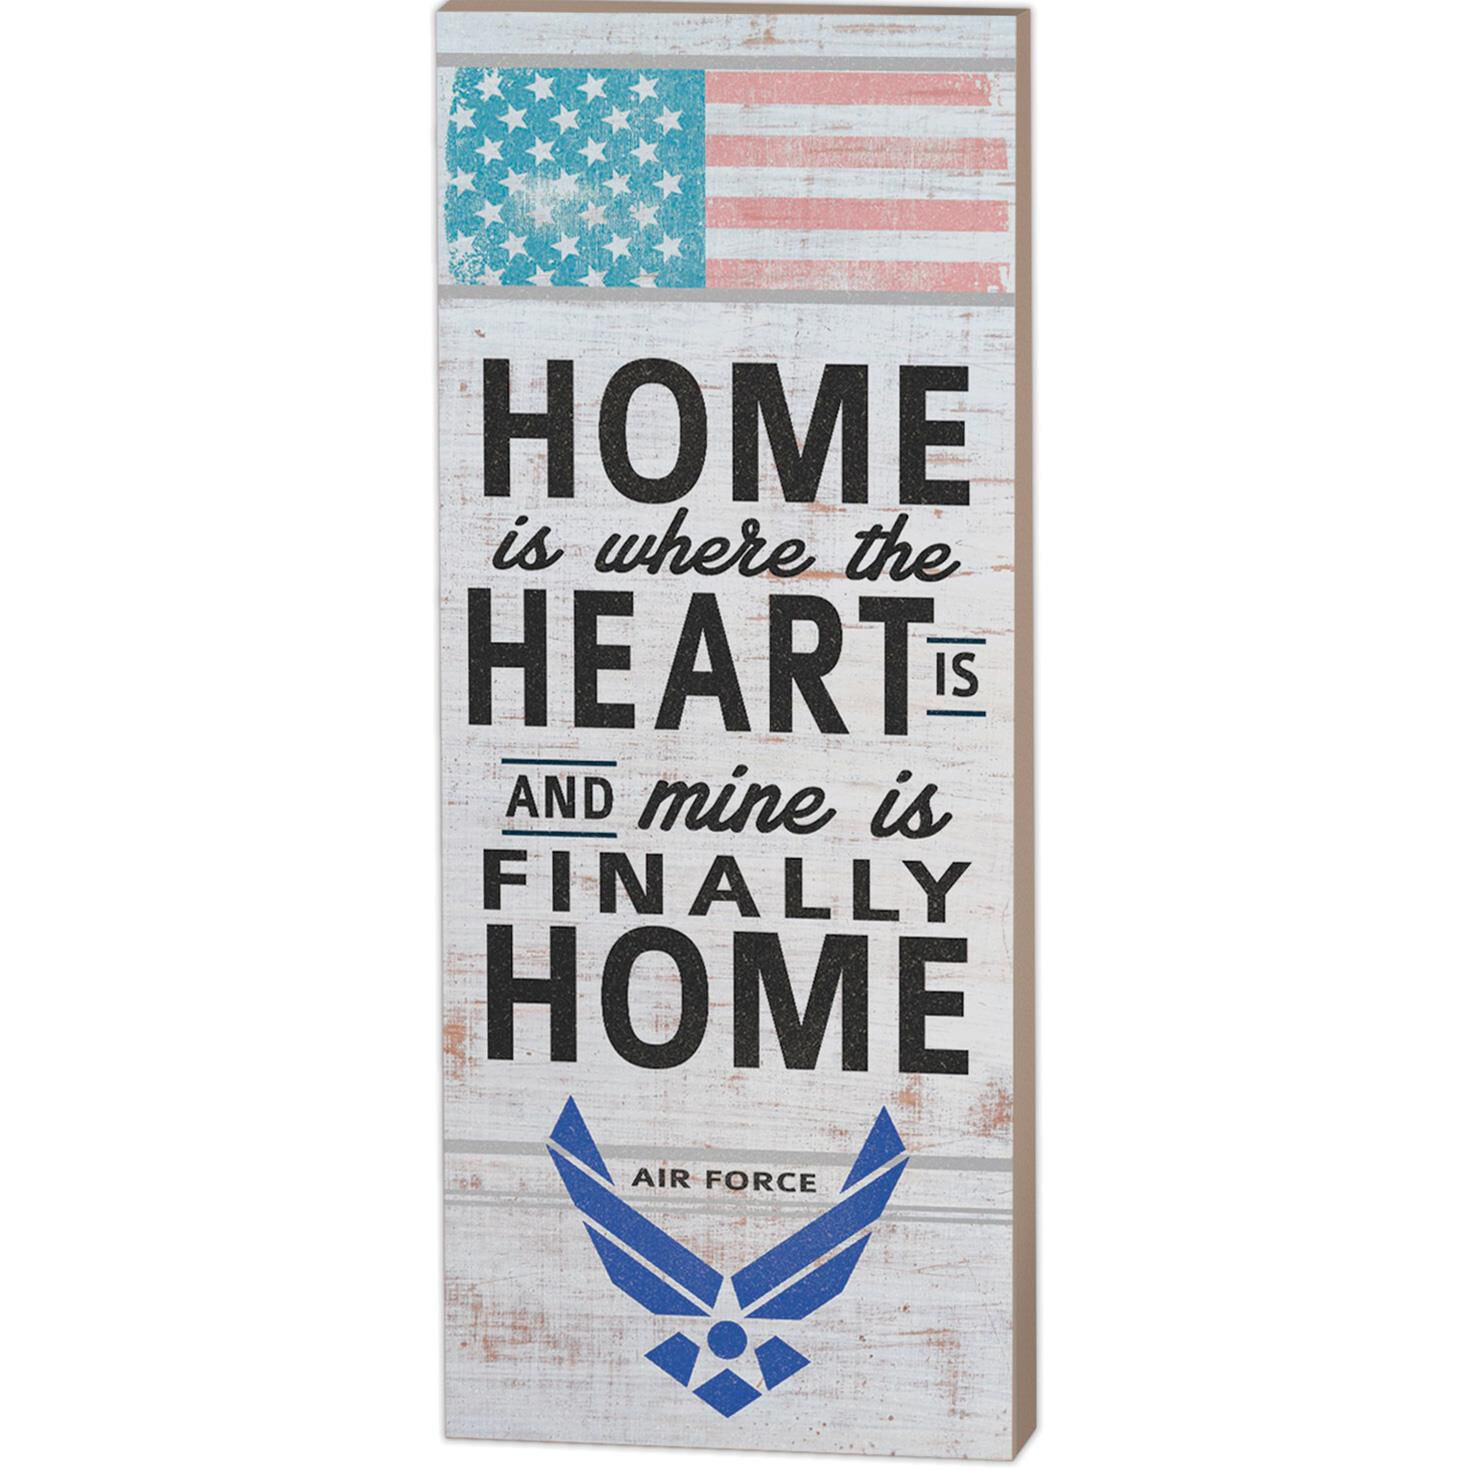 U S Air Force My Heart Is Home Wood Sign 7x18 Plaques Signs Hallmark,Best Wireless Charging Station For Apple Watch And Iphone